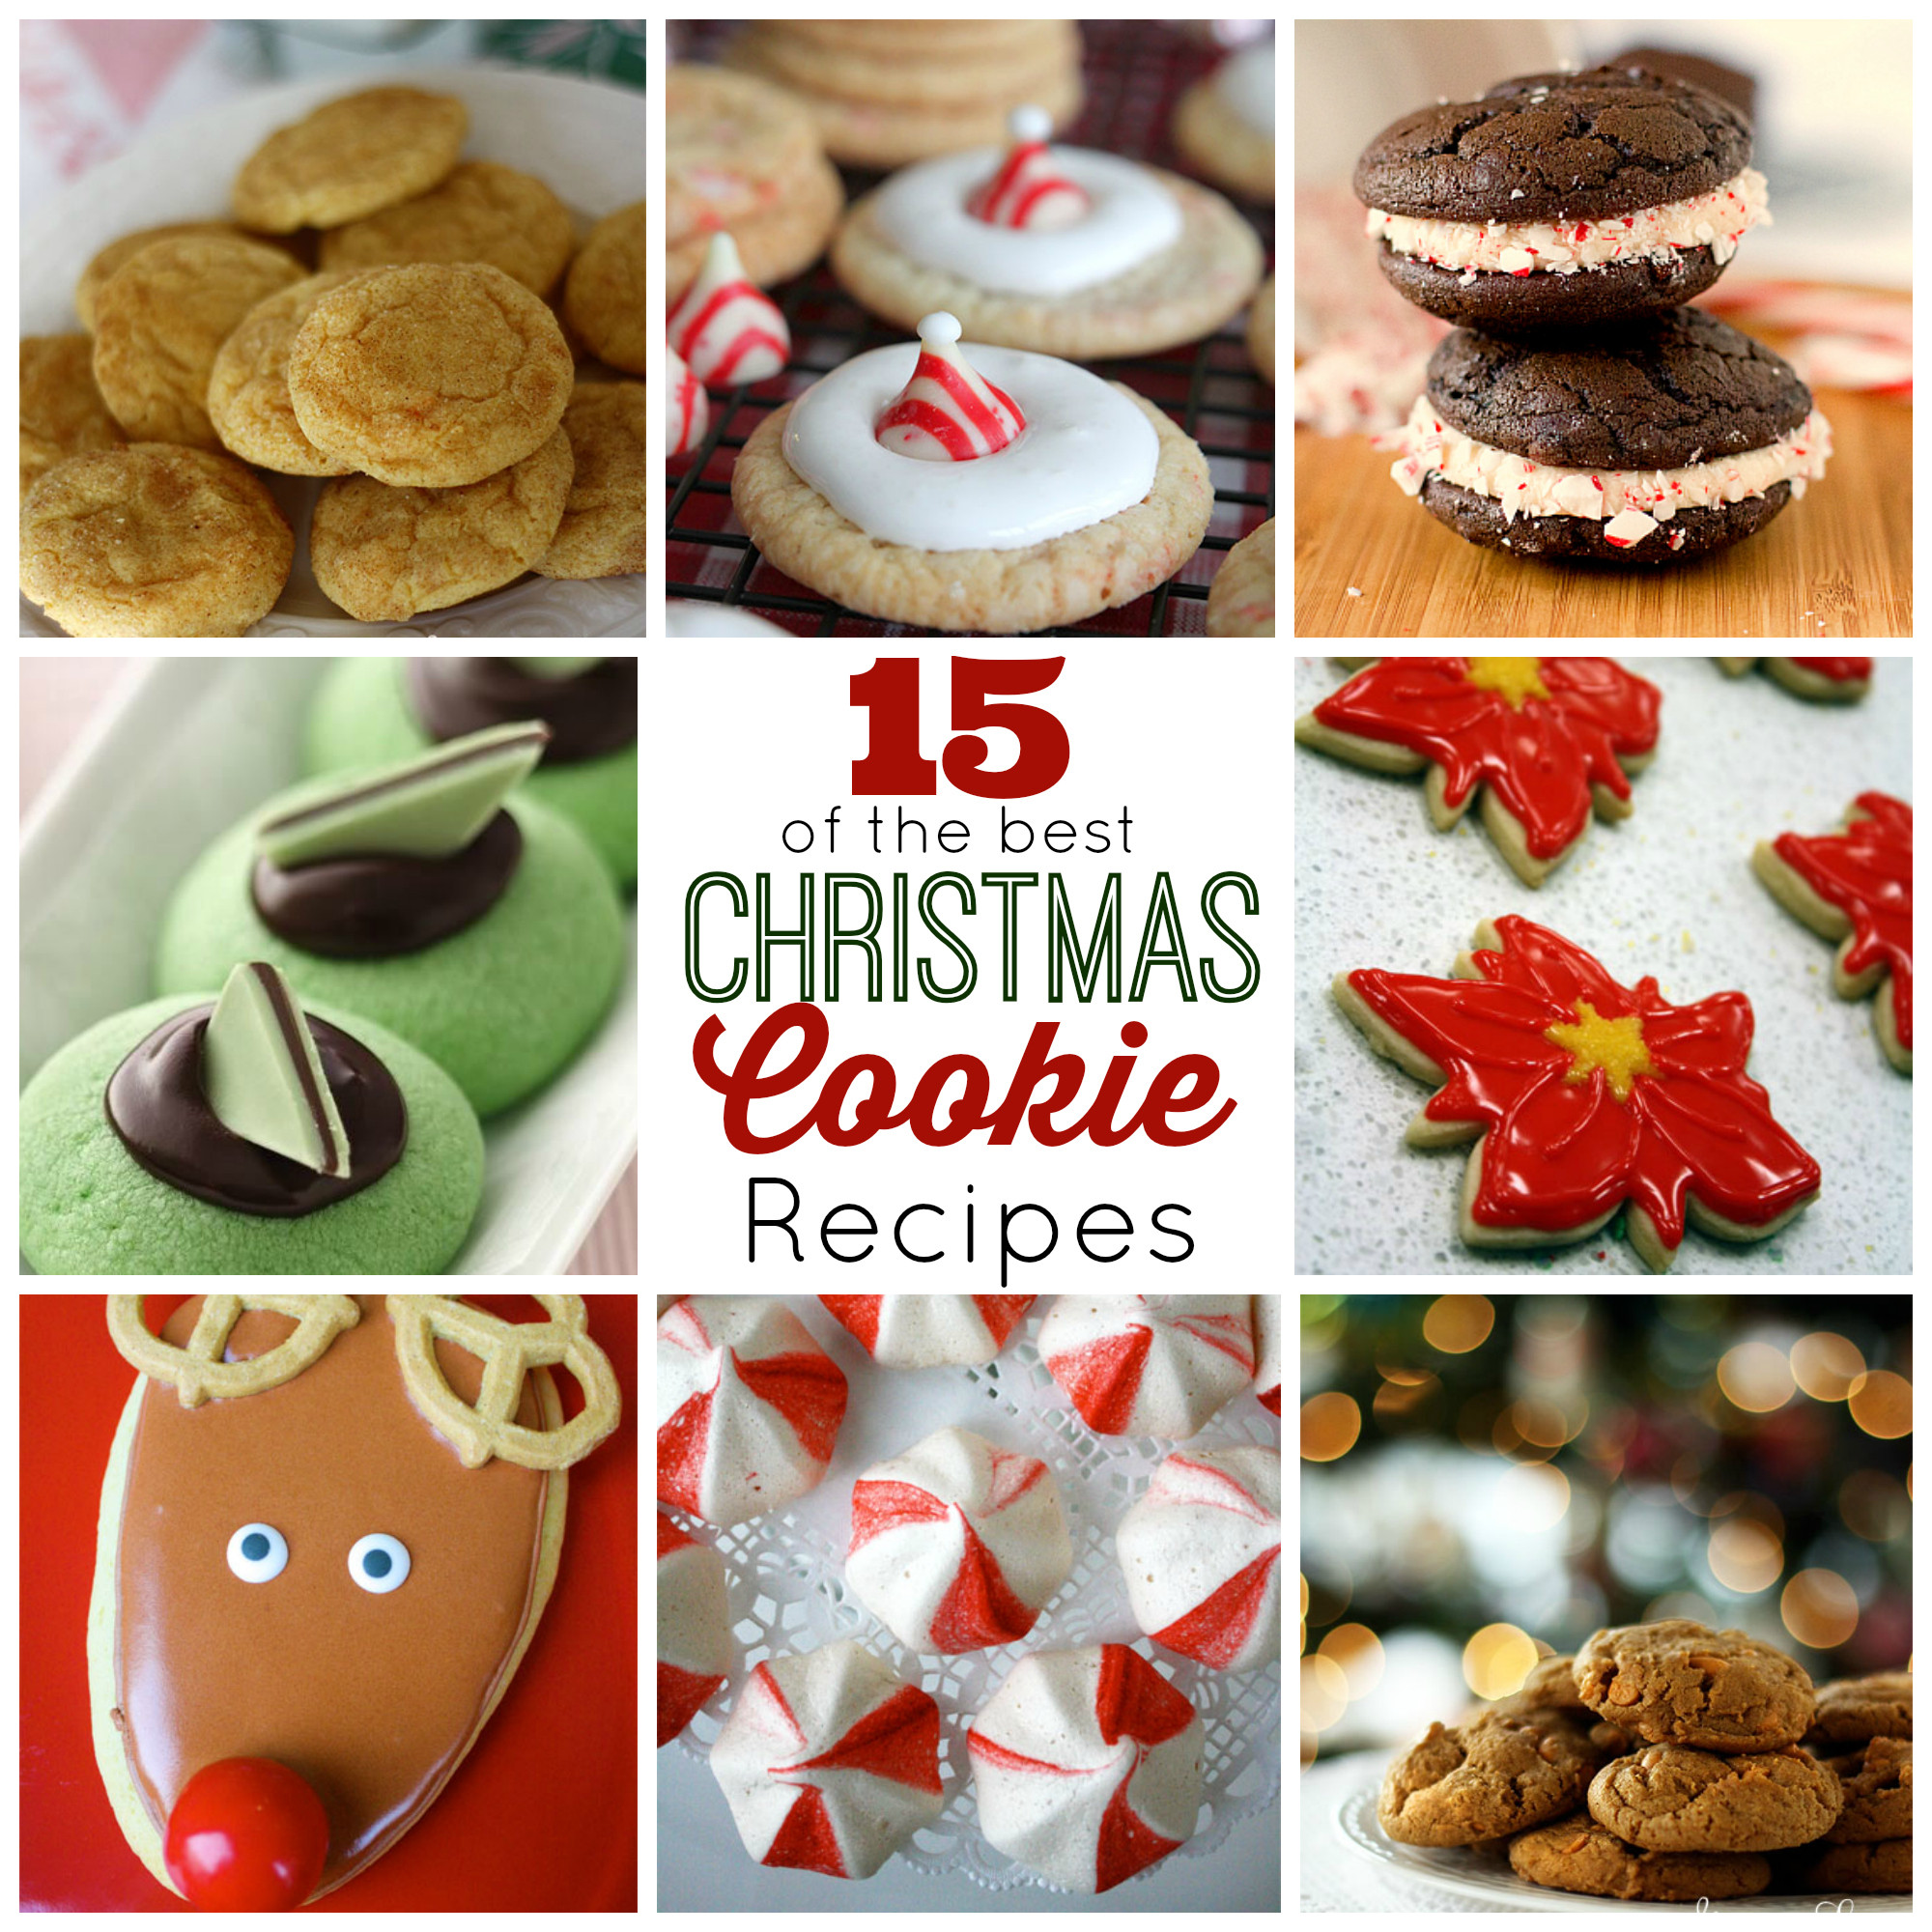 Holiday Baking Ideas Christmas  15 of the Best Christmas Cookies